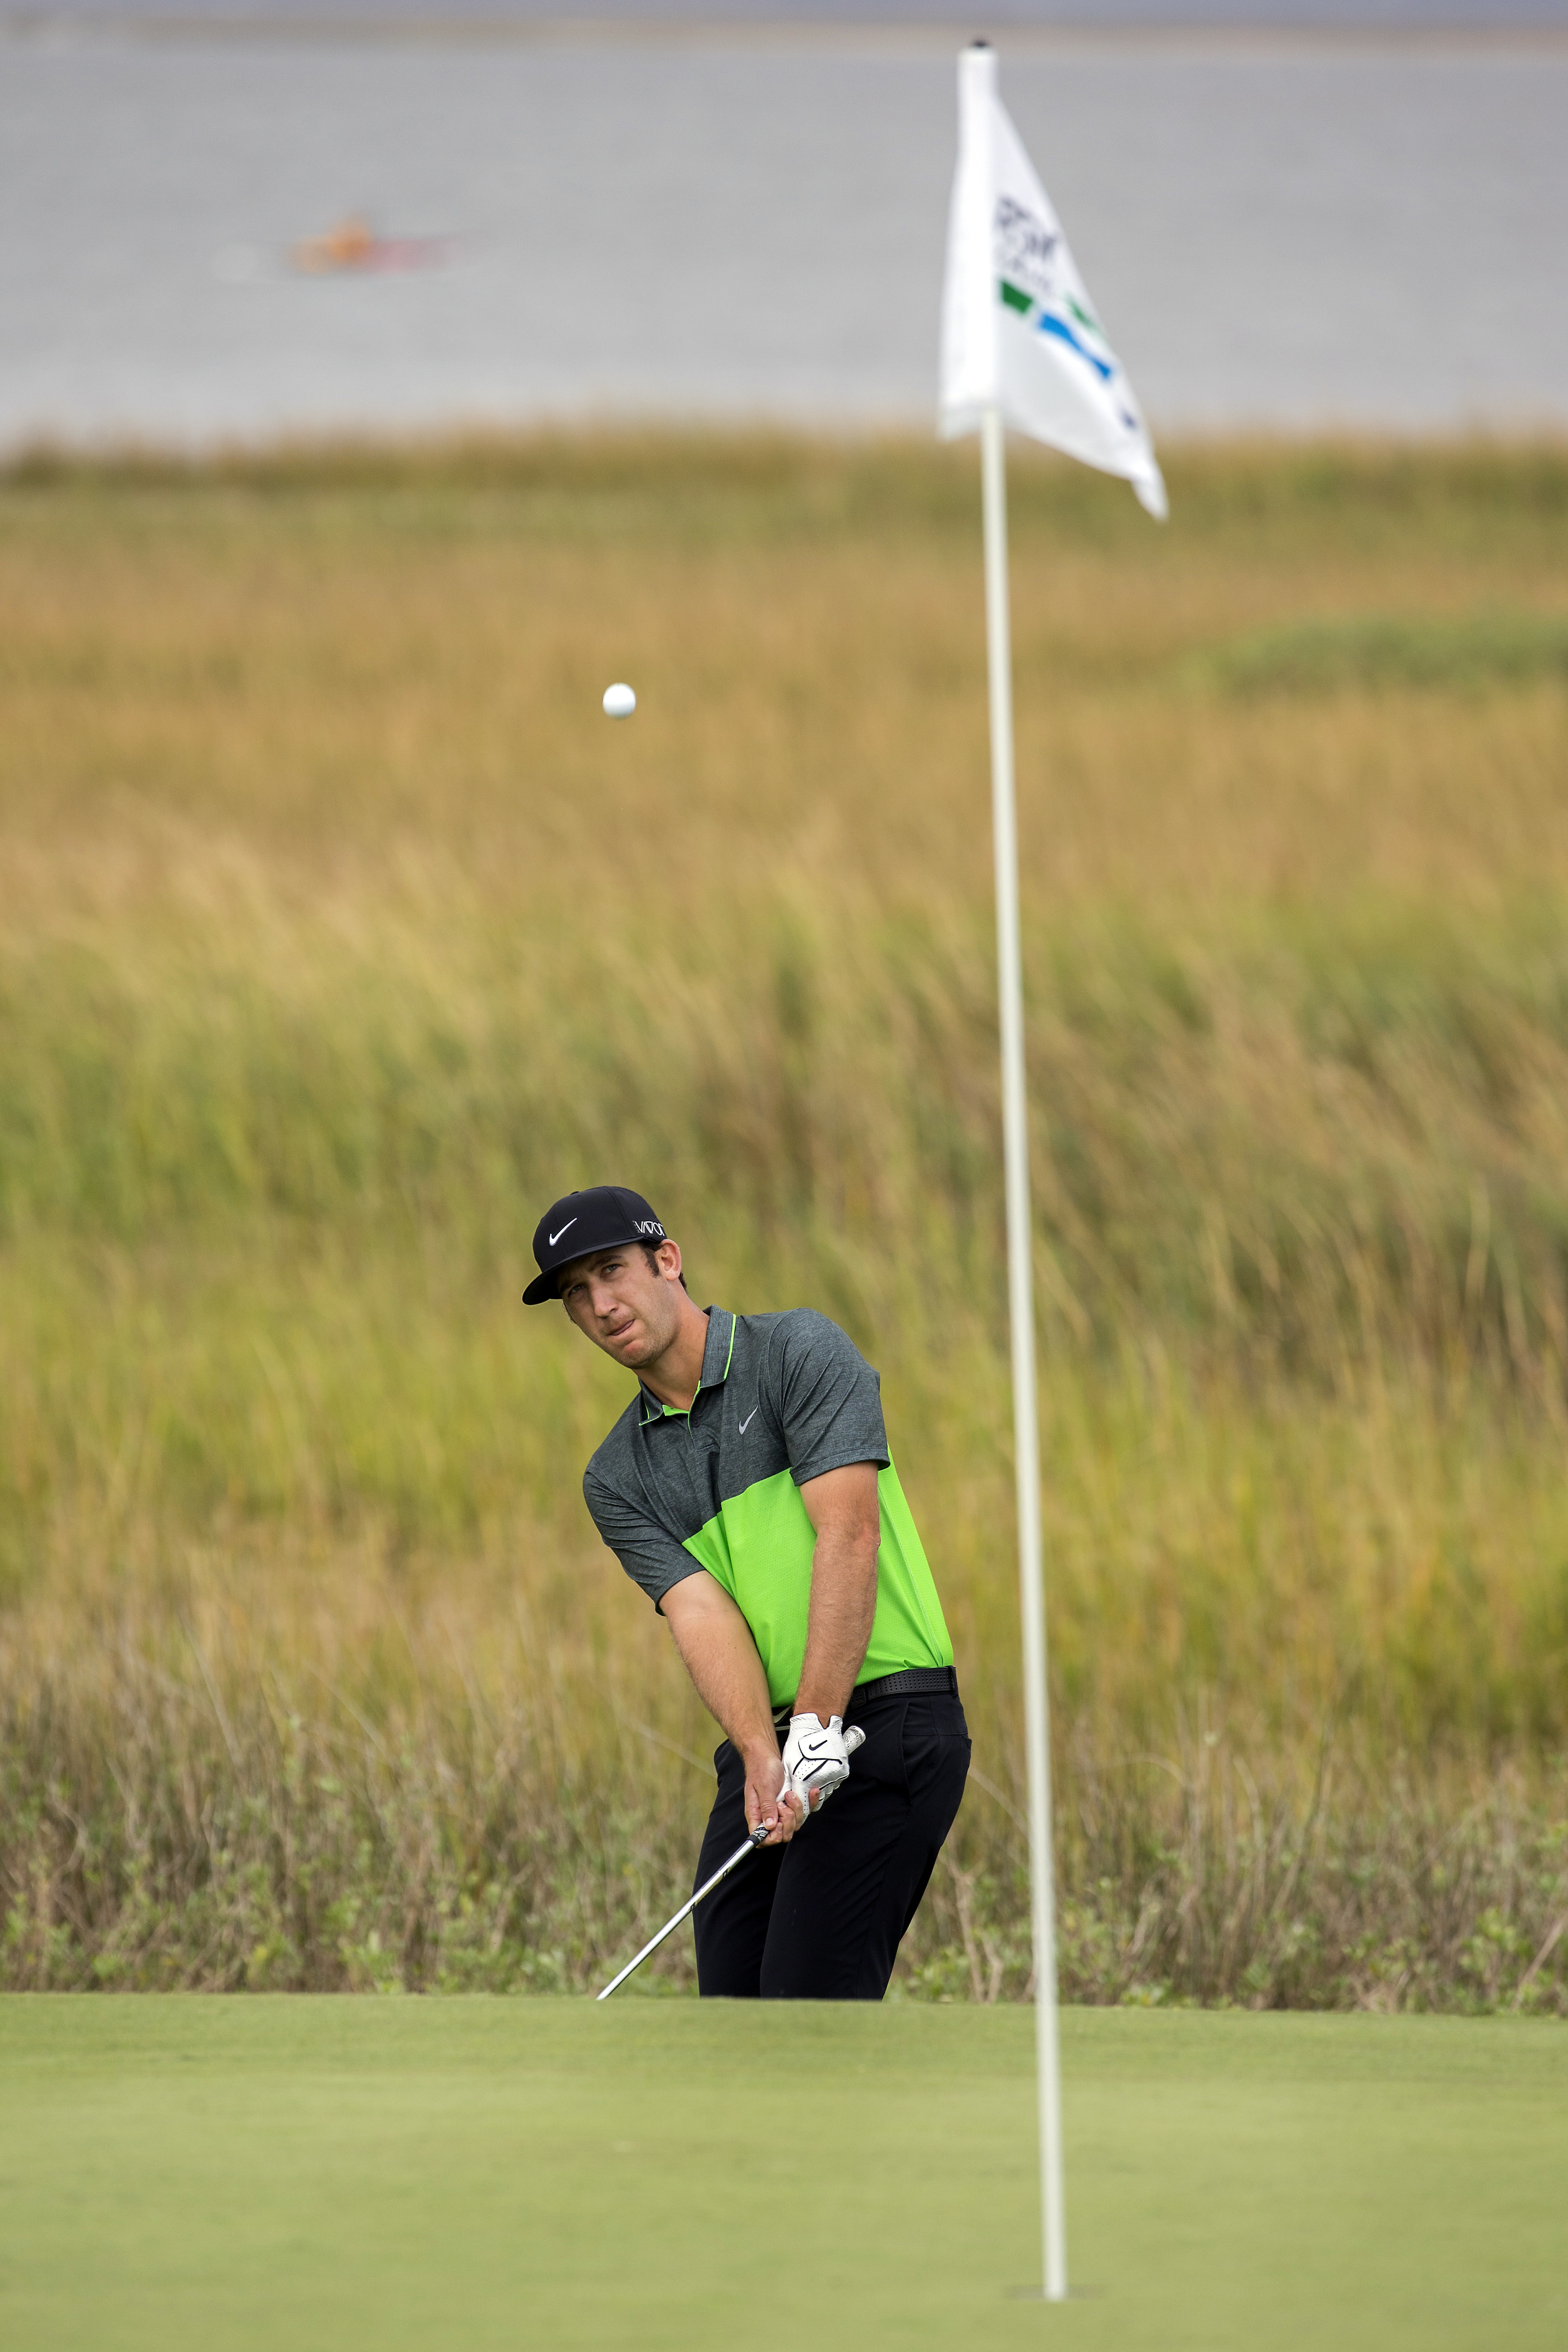 Kevin Chappell watches his chip shot onto the 14th green on the Seaside Course at Sea Island Golf Club during the third round at the RSM Classic golf tournament, Saturday, Nov. 21, 2015, in St. Simons Island, Ga. (AP Photo/Stephen B. Morton)